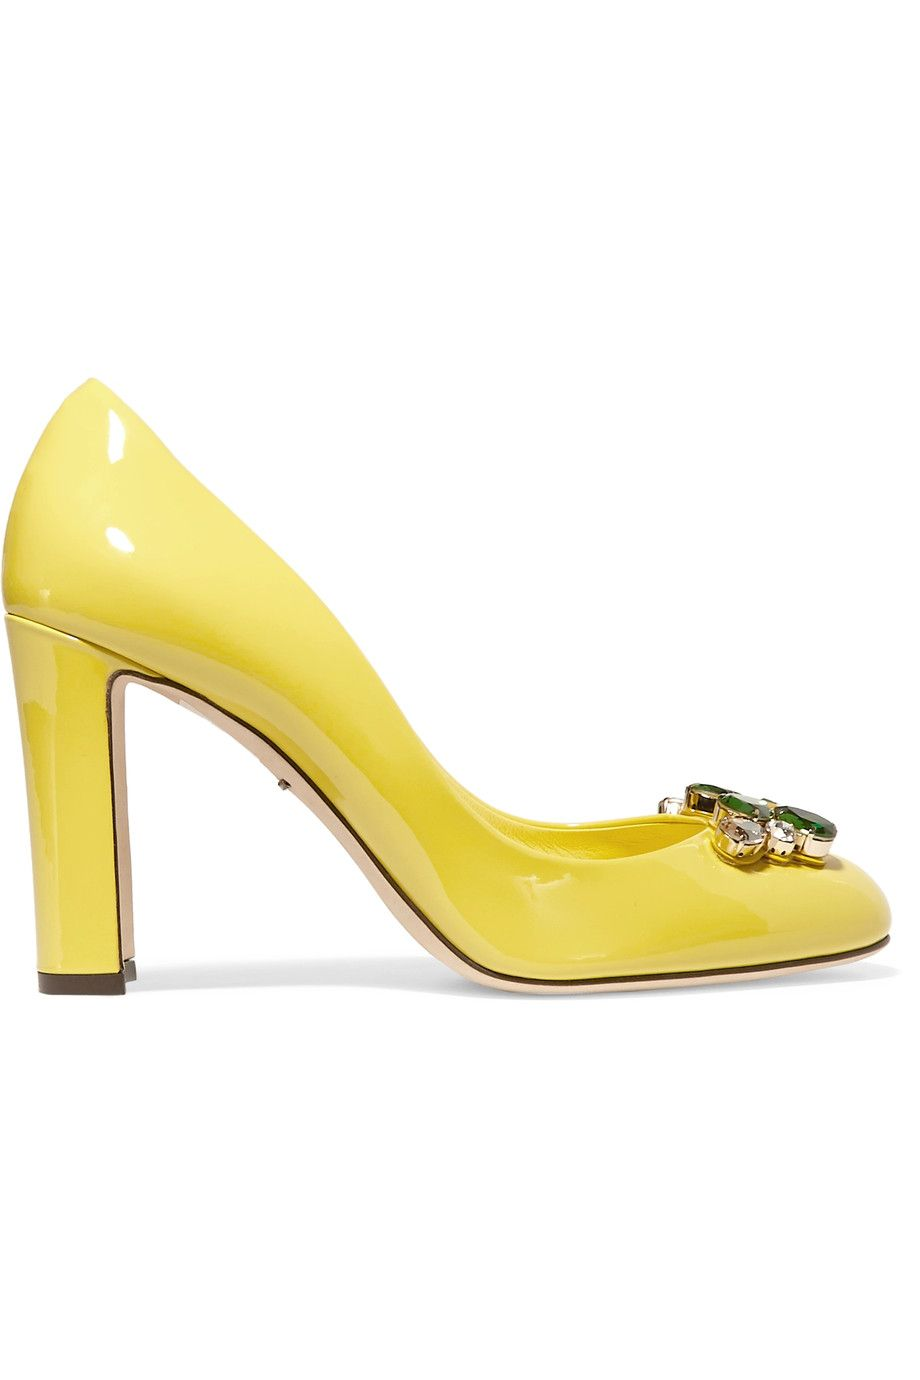 Patent leather pumps Dolce & Gabbana eyjhnQDq